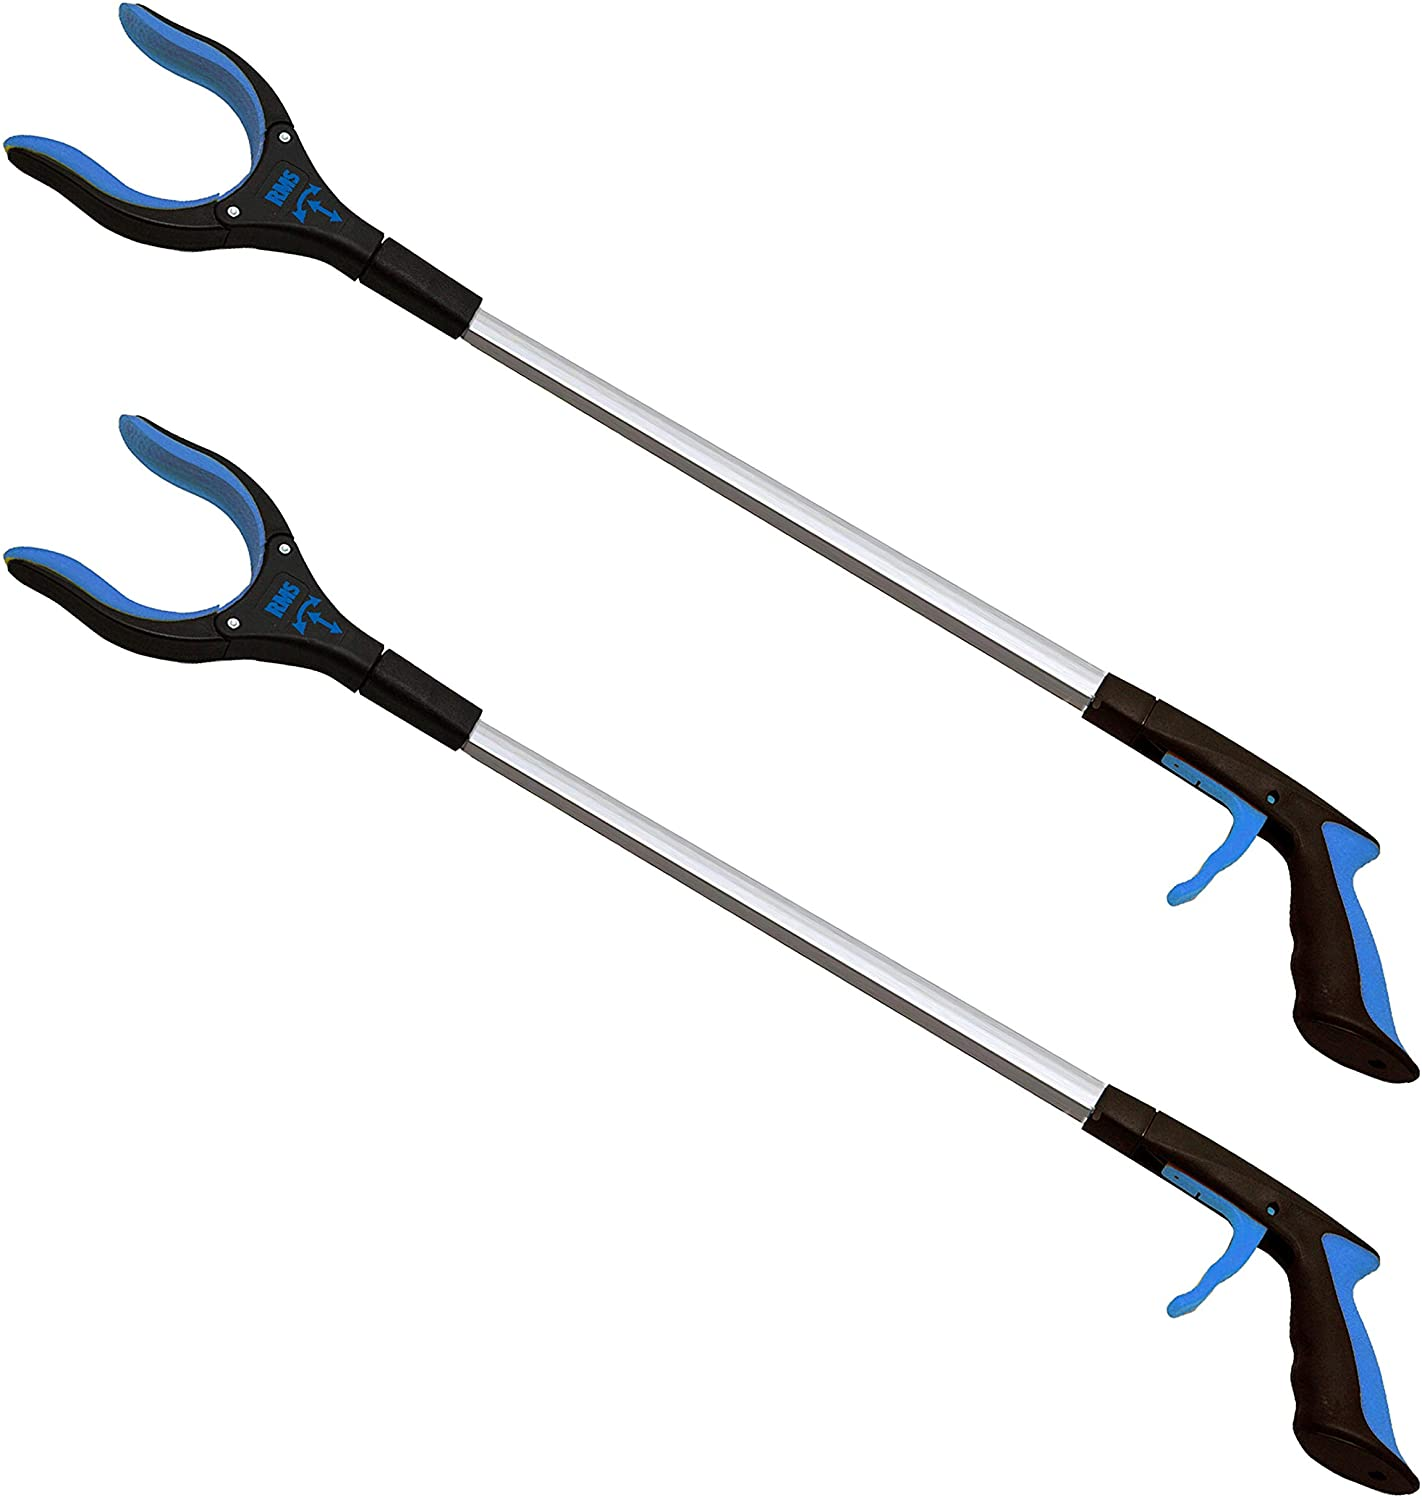 2-Pack 32 Inch Extra Long Grabber Reacher with Rotating Jaw - Mobility Aid Reaching Assist Tool (Blue): Health & Personal Care